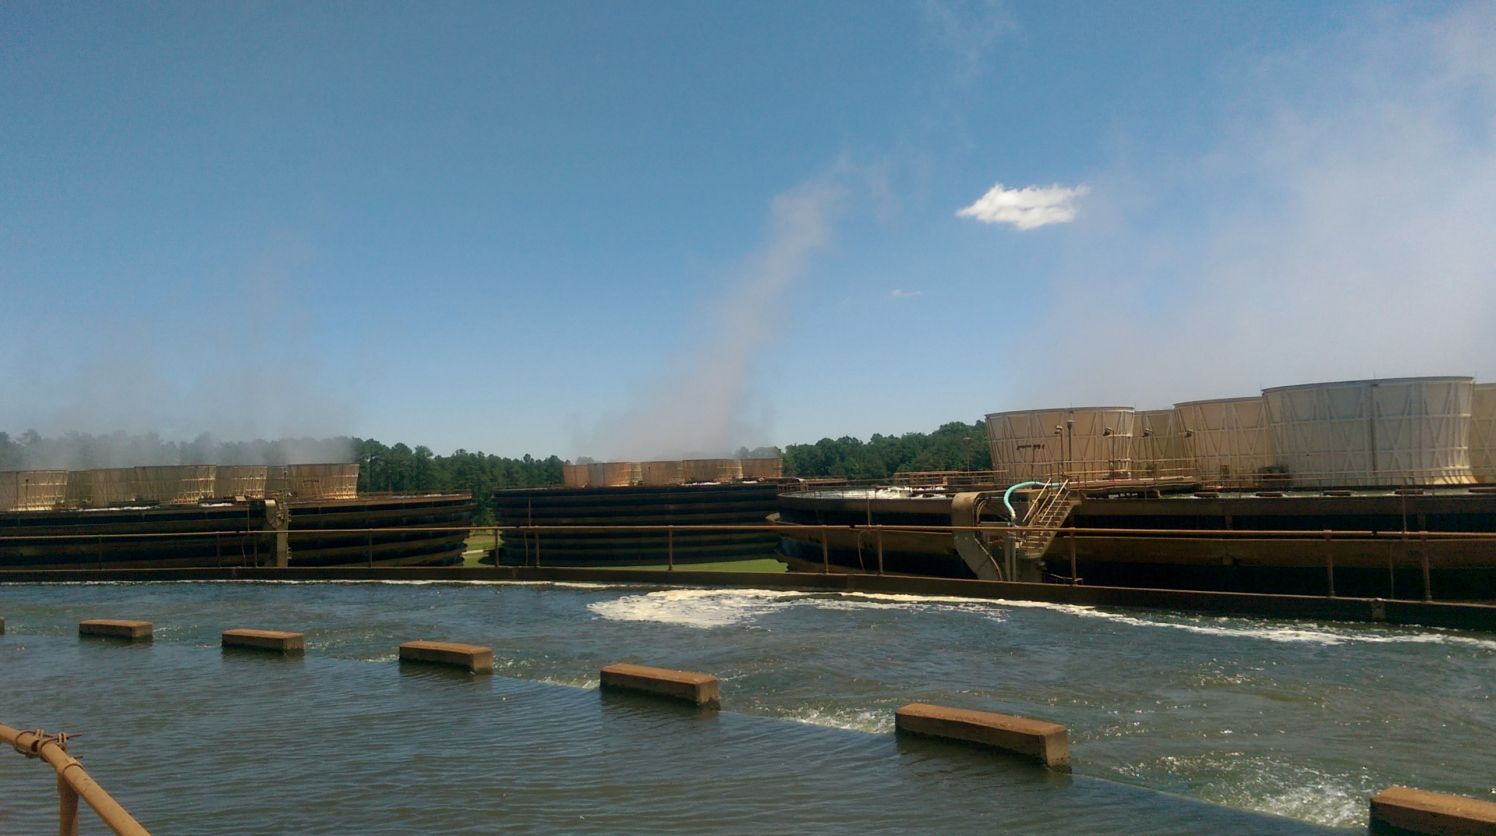 Cooling towers at Catawba Nuclear Station